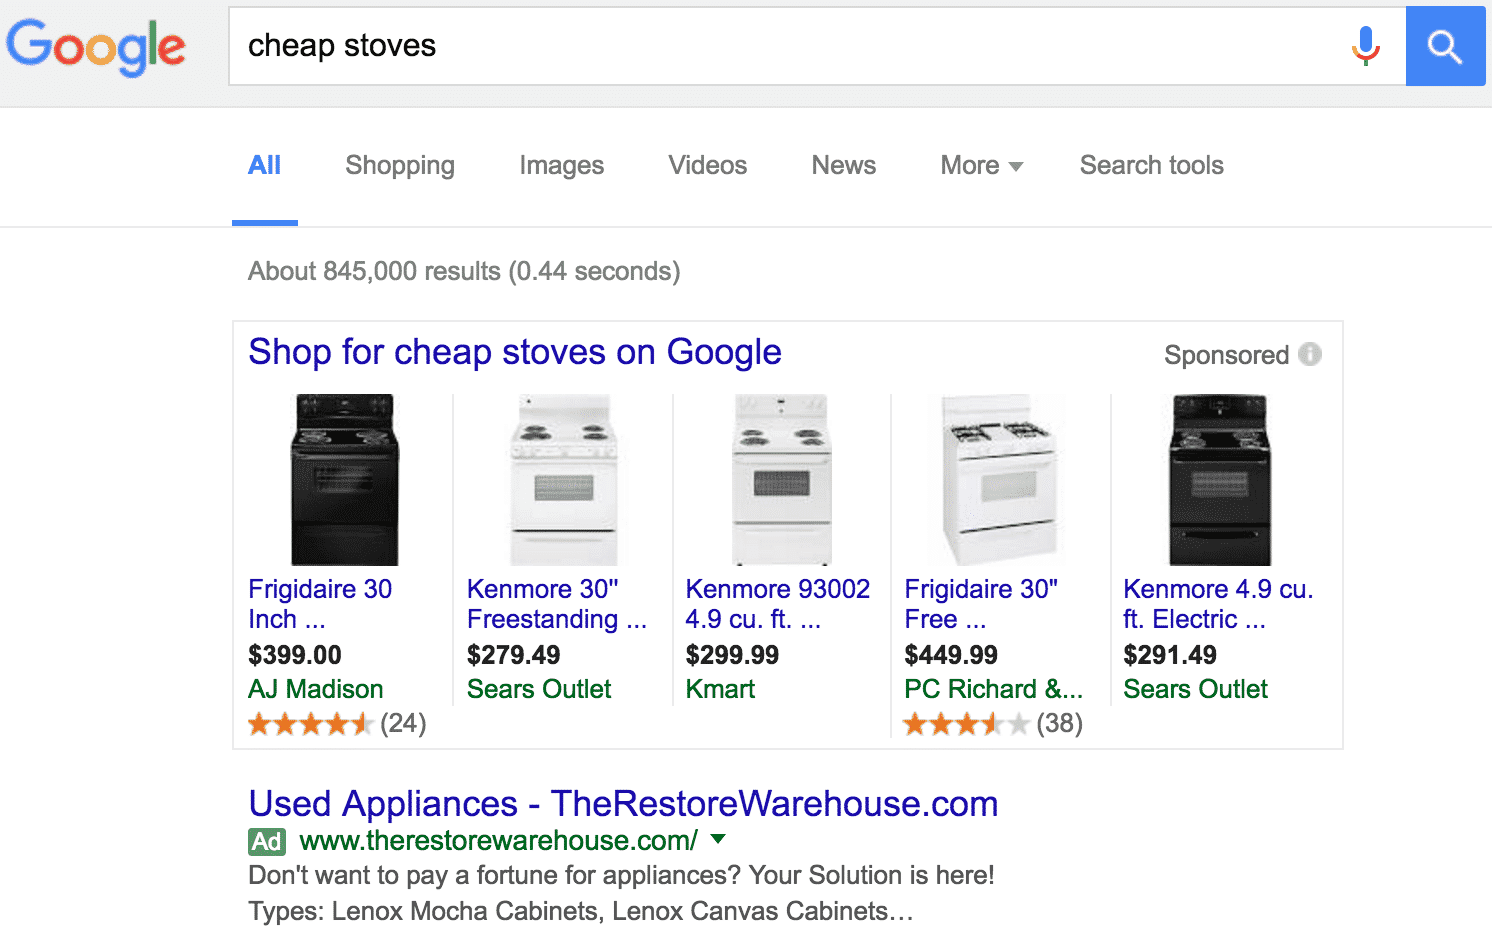 Cheap Stoves Search Results | Disruptive Advertising